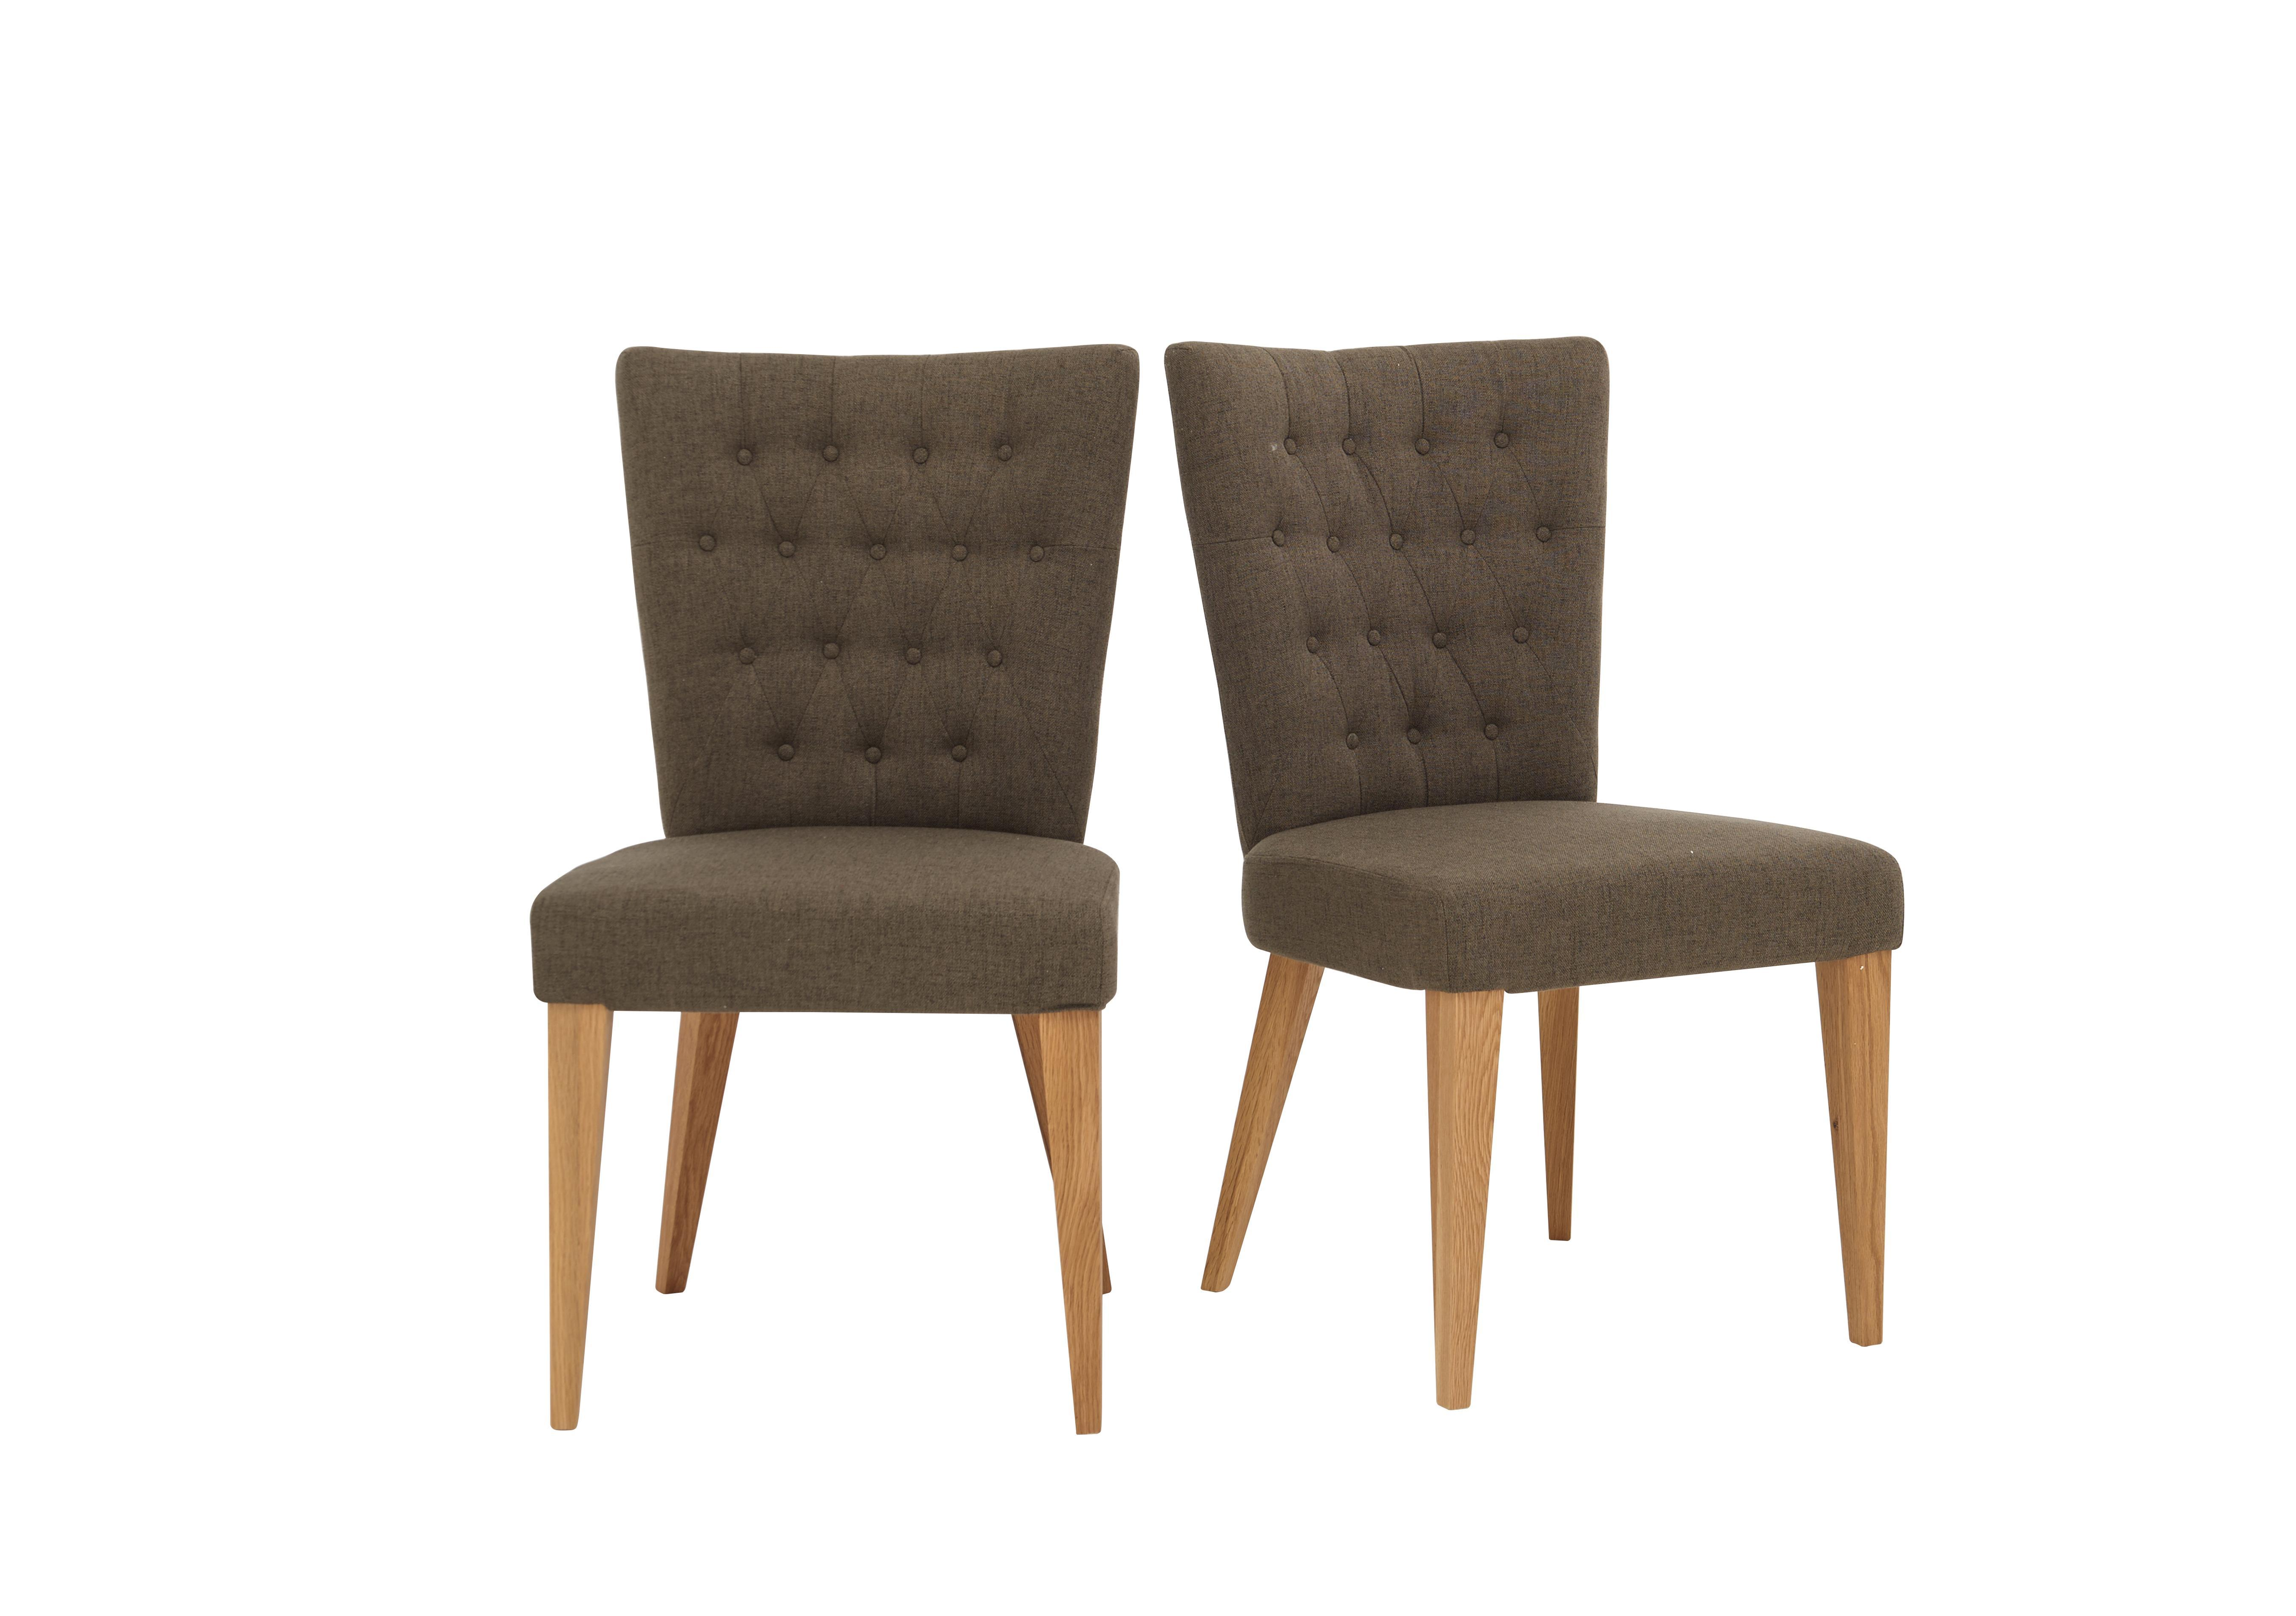 Dorset Pair Of Fabric Dining Chairs Furniture Village - Garden Furniture Clearance Company Dorset